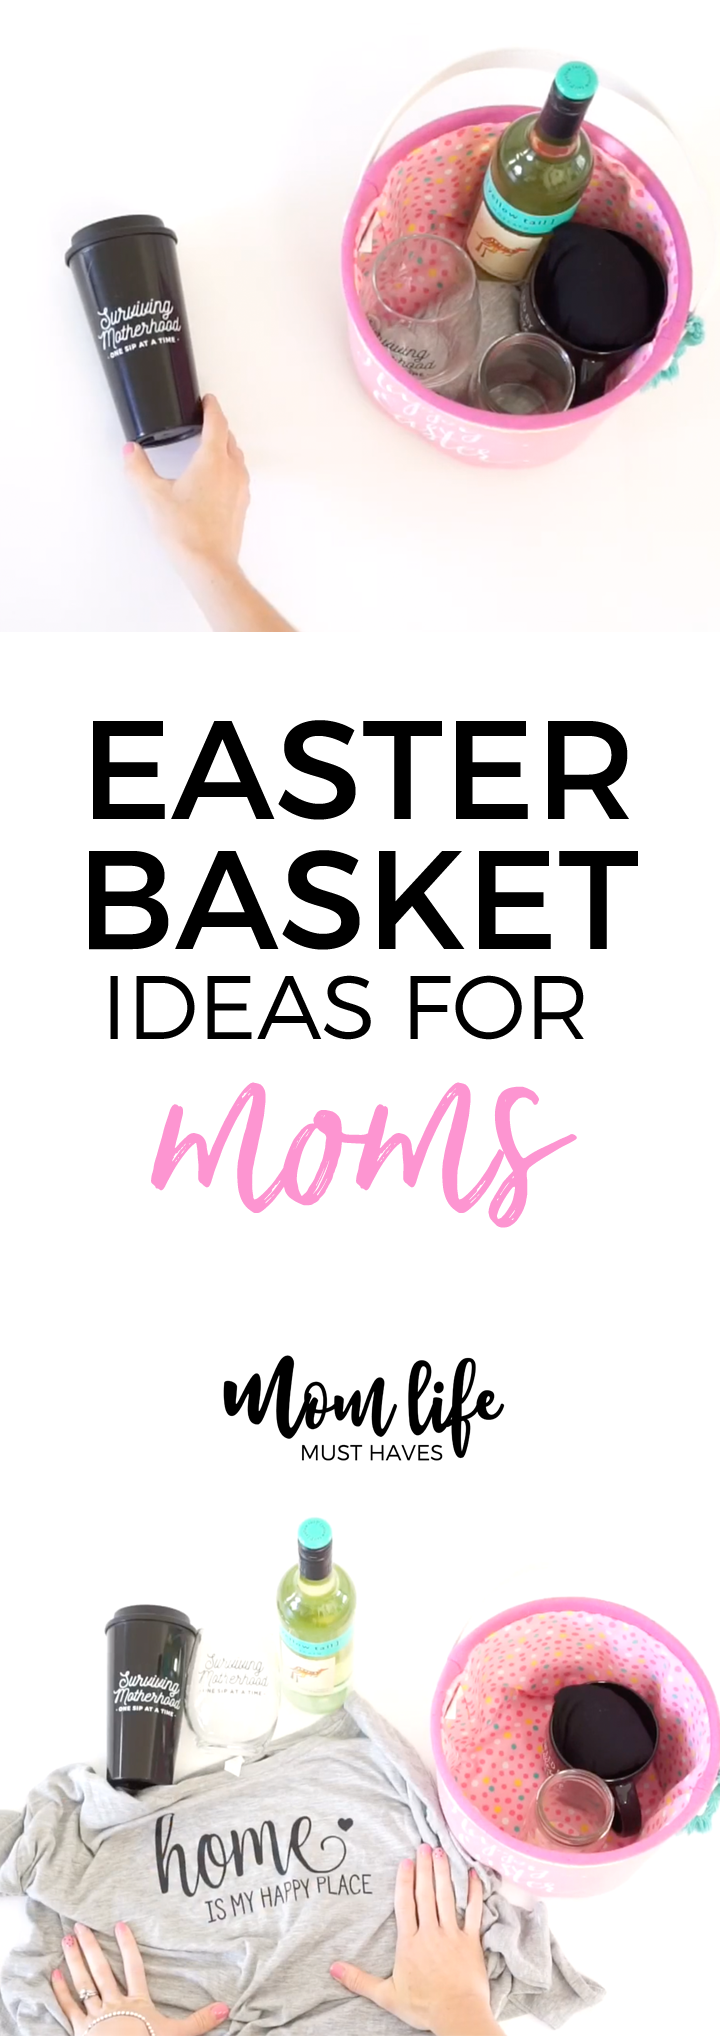 Fun and simple Easter basket ideas for moms from Mom Life Must Haves!